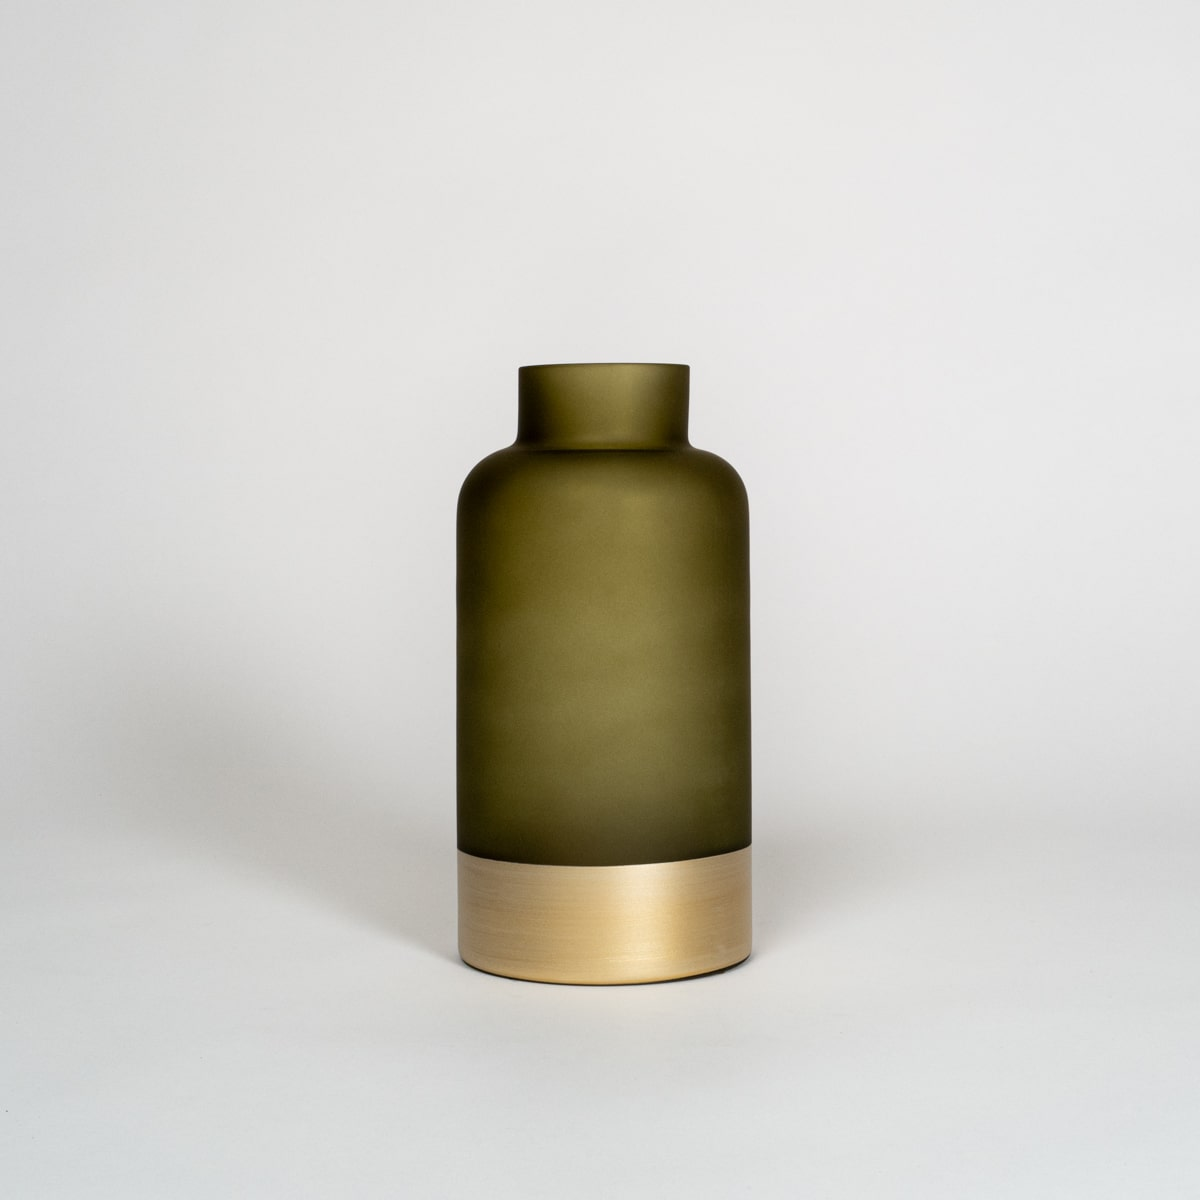 Bloom Flower Delivery | Olive Green & Brass Bottle Vase